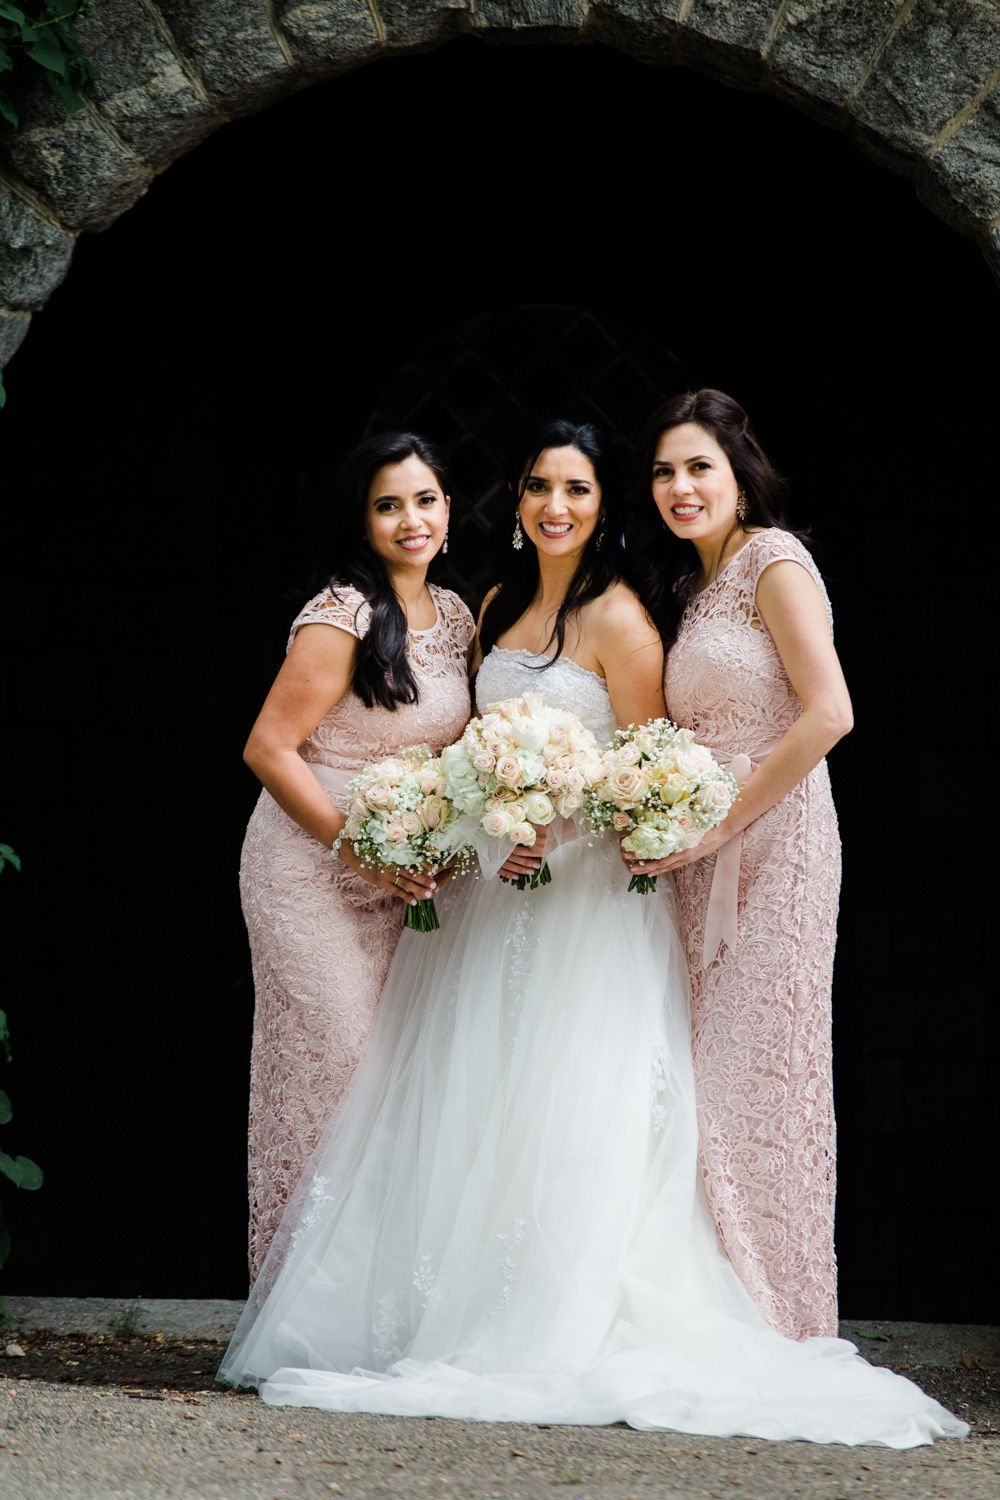 Bride in tulle dress and bridesmaids wearing blush lace